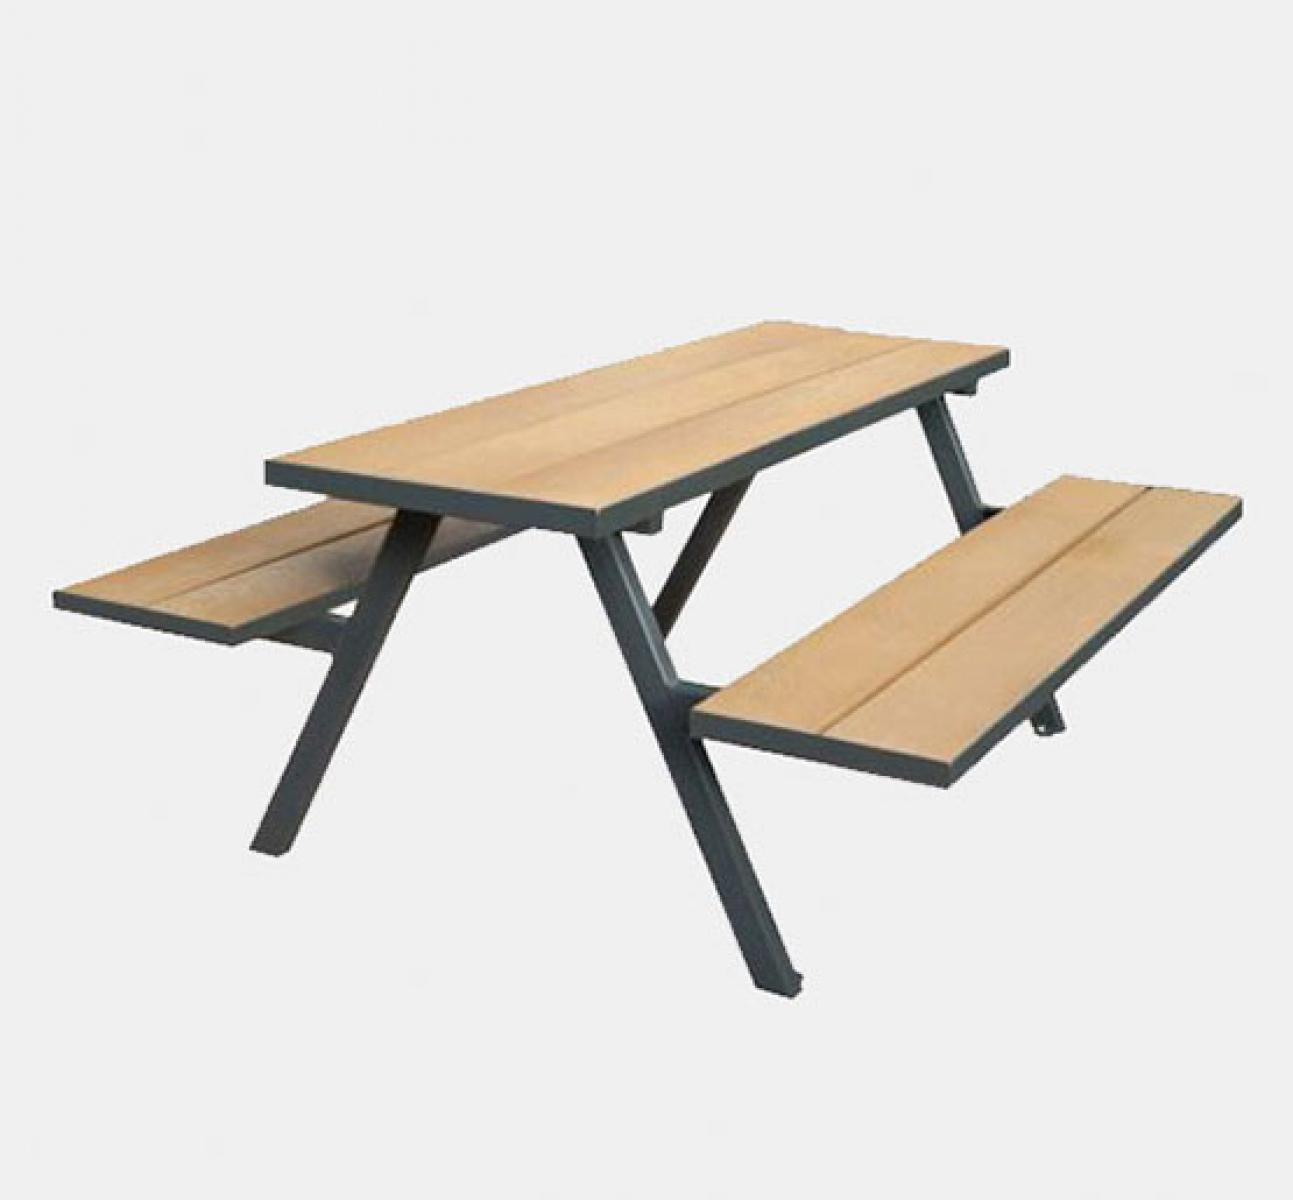 Mill A Frame Picnic Bench Golden Uhs